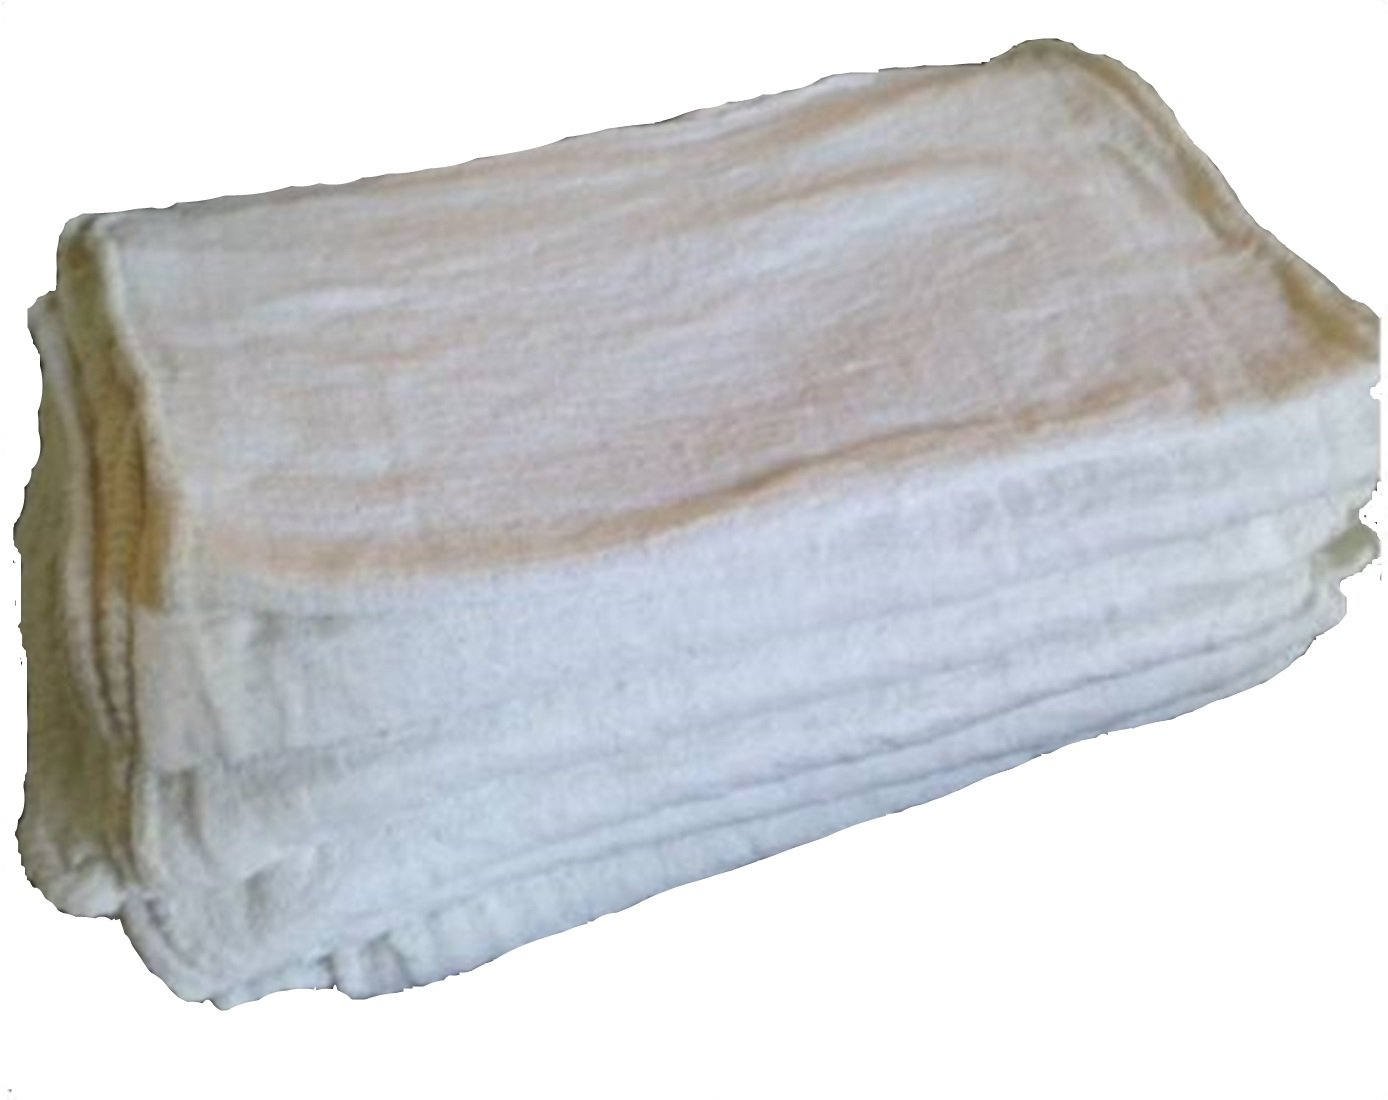 1000PC NEW INDUSTRIAL SHOP RAGS CLEANING TOWELS WHITE 13''x14'' GA TOWEL PREMIUM TKT-11